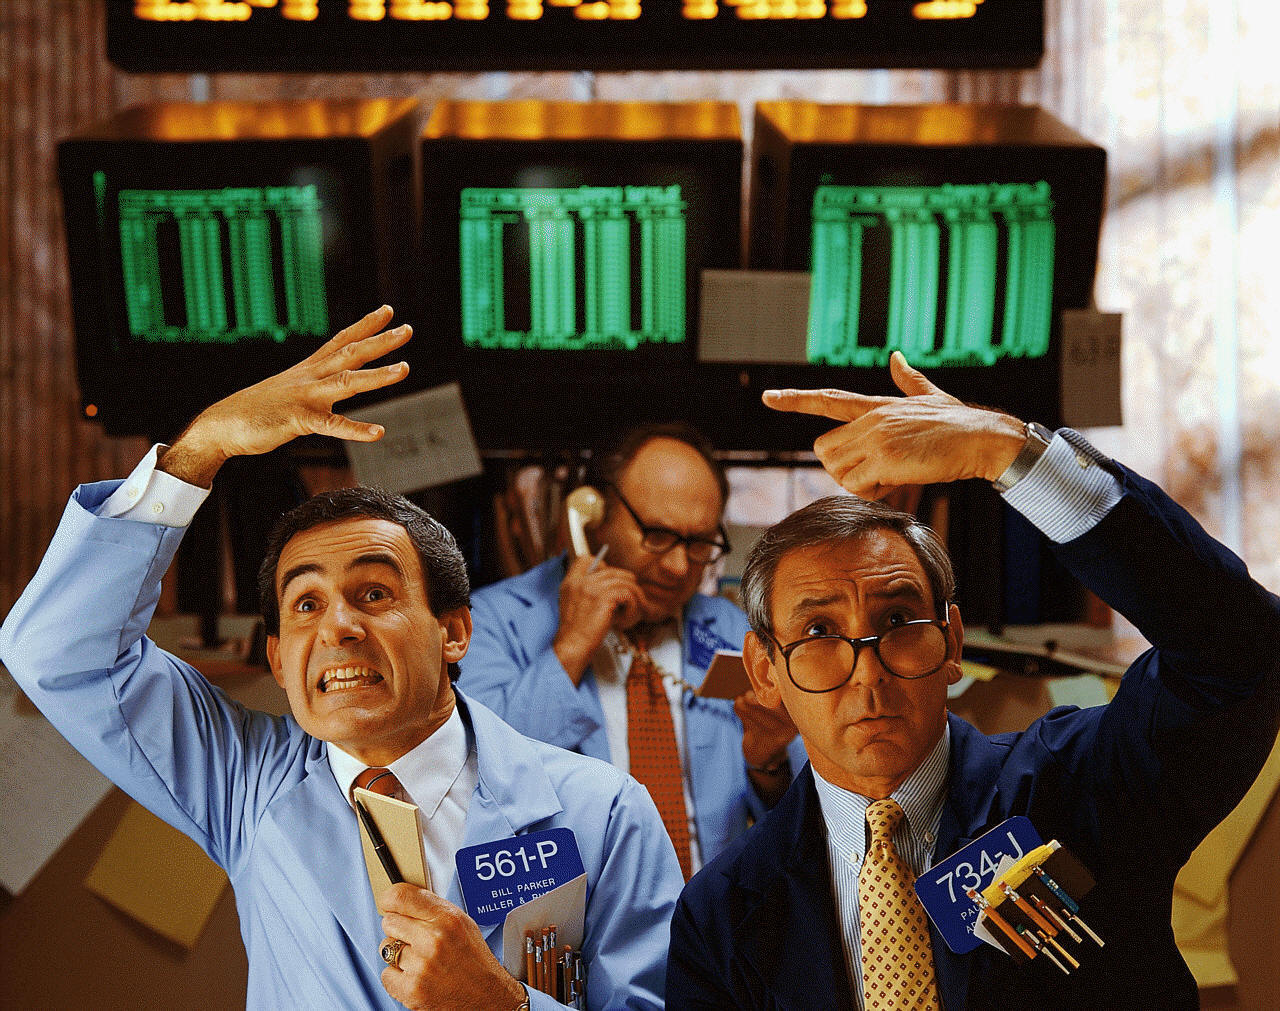 Traders watch world markets especially oil, gold, and equities